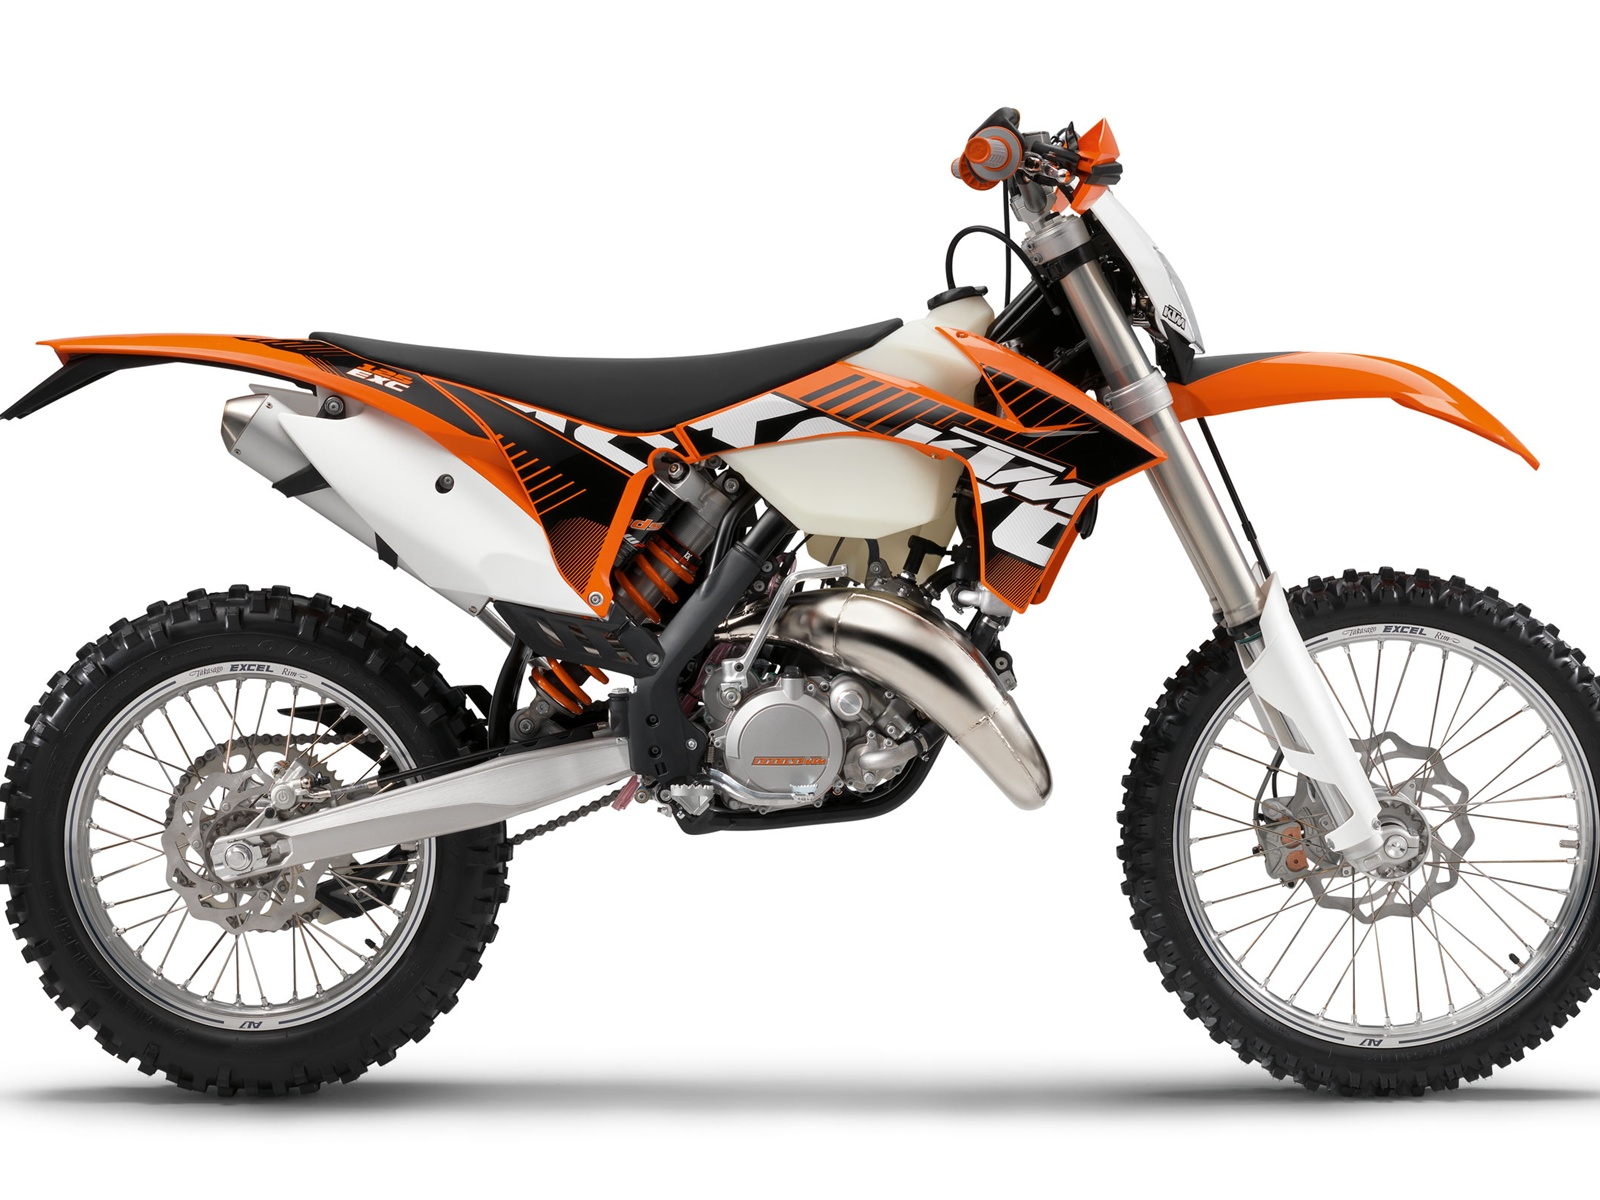 KTM Offroad 125 EXC motorcycle 2012 wallpaper - 1600x1200